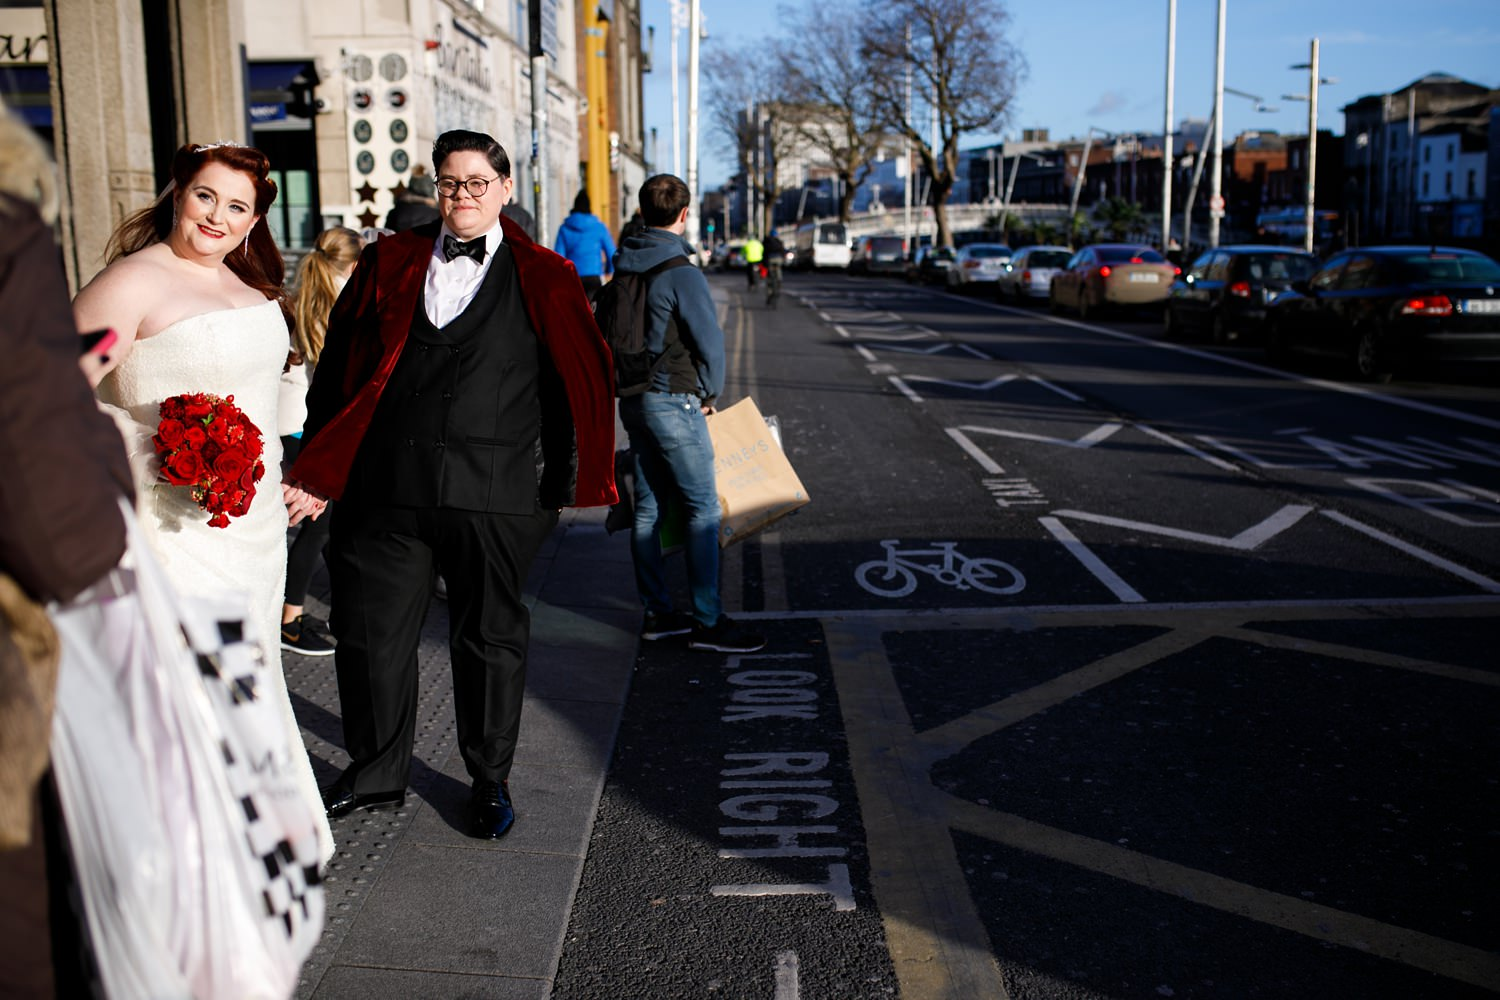 Elisha-Clarke-Photography-Dublin-City-Wedding_00230.jpg